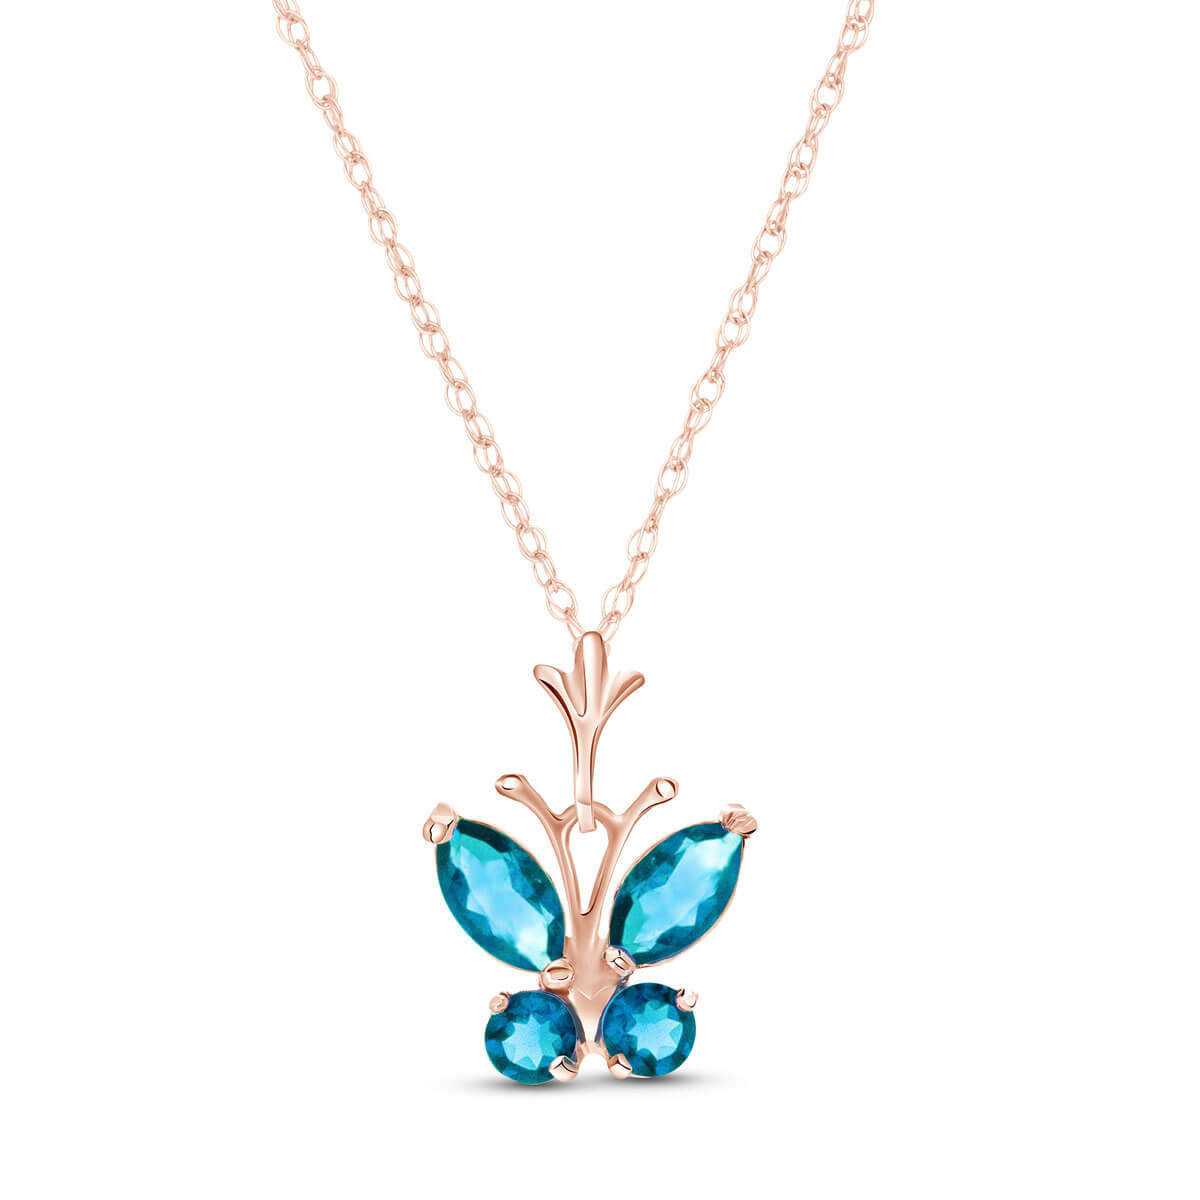 Blue Topaz Butterfly Pendant Necklace 0.6 ctw in 9ct Rose Gold